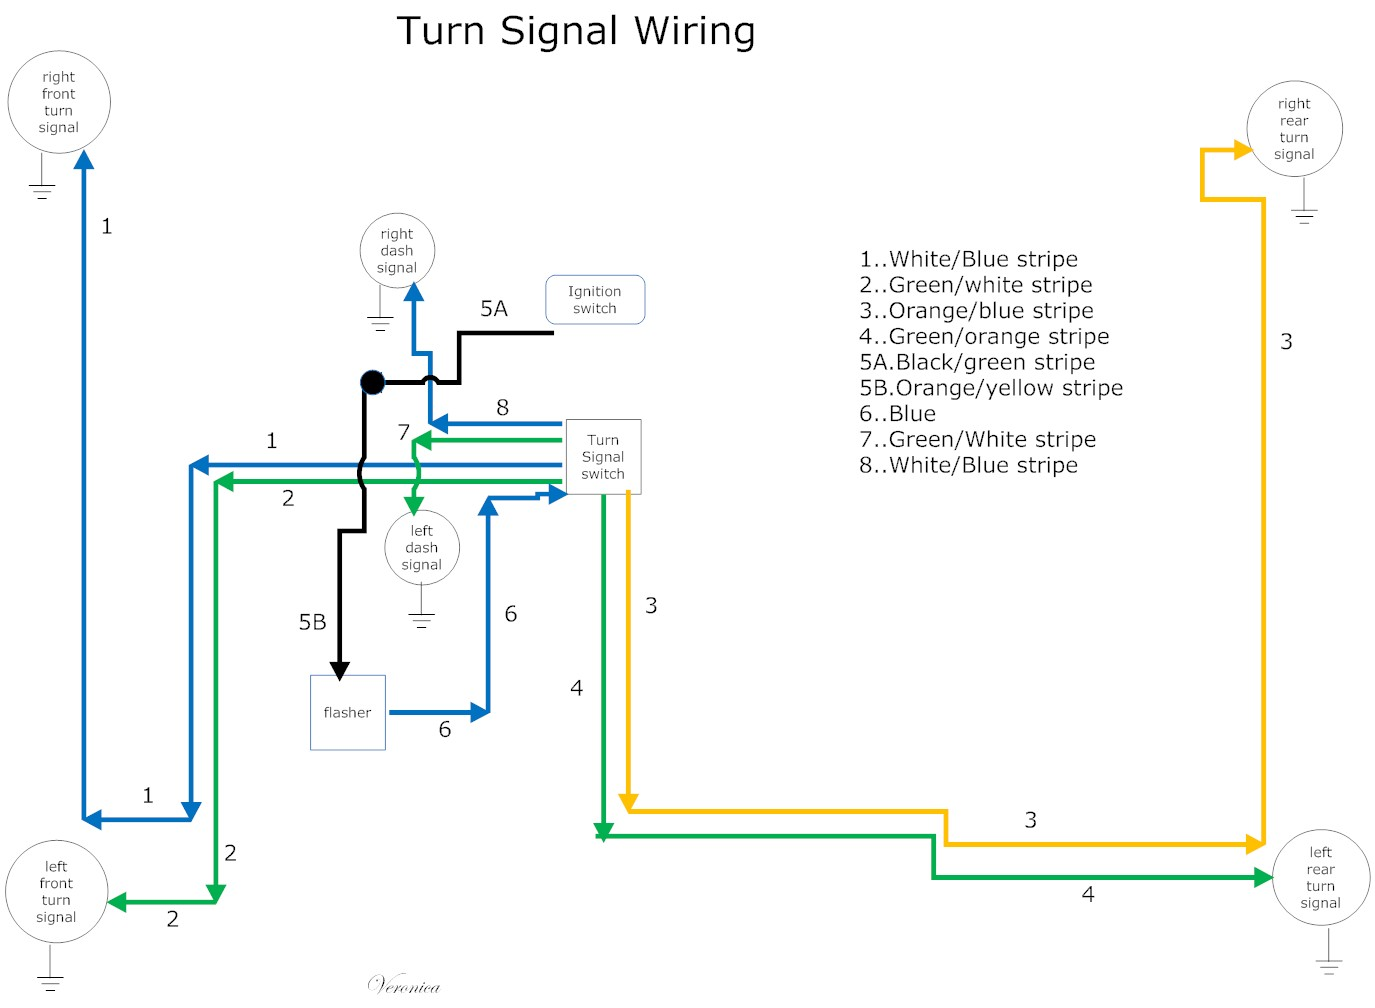 66 Mustang Turn Signal Wiring Diagram